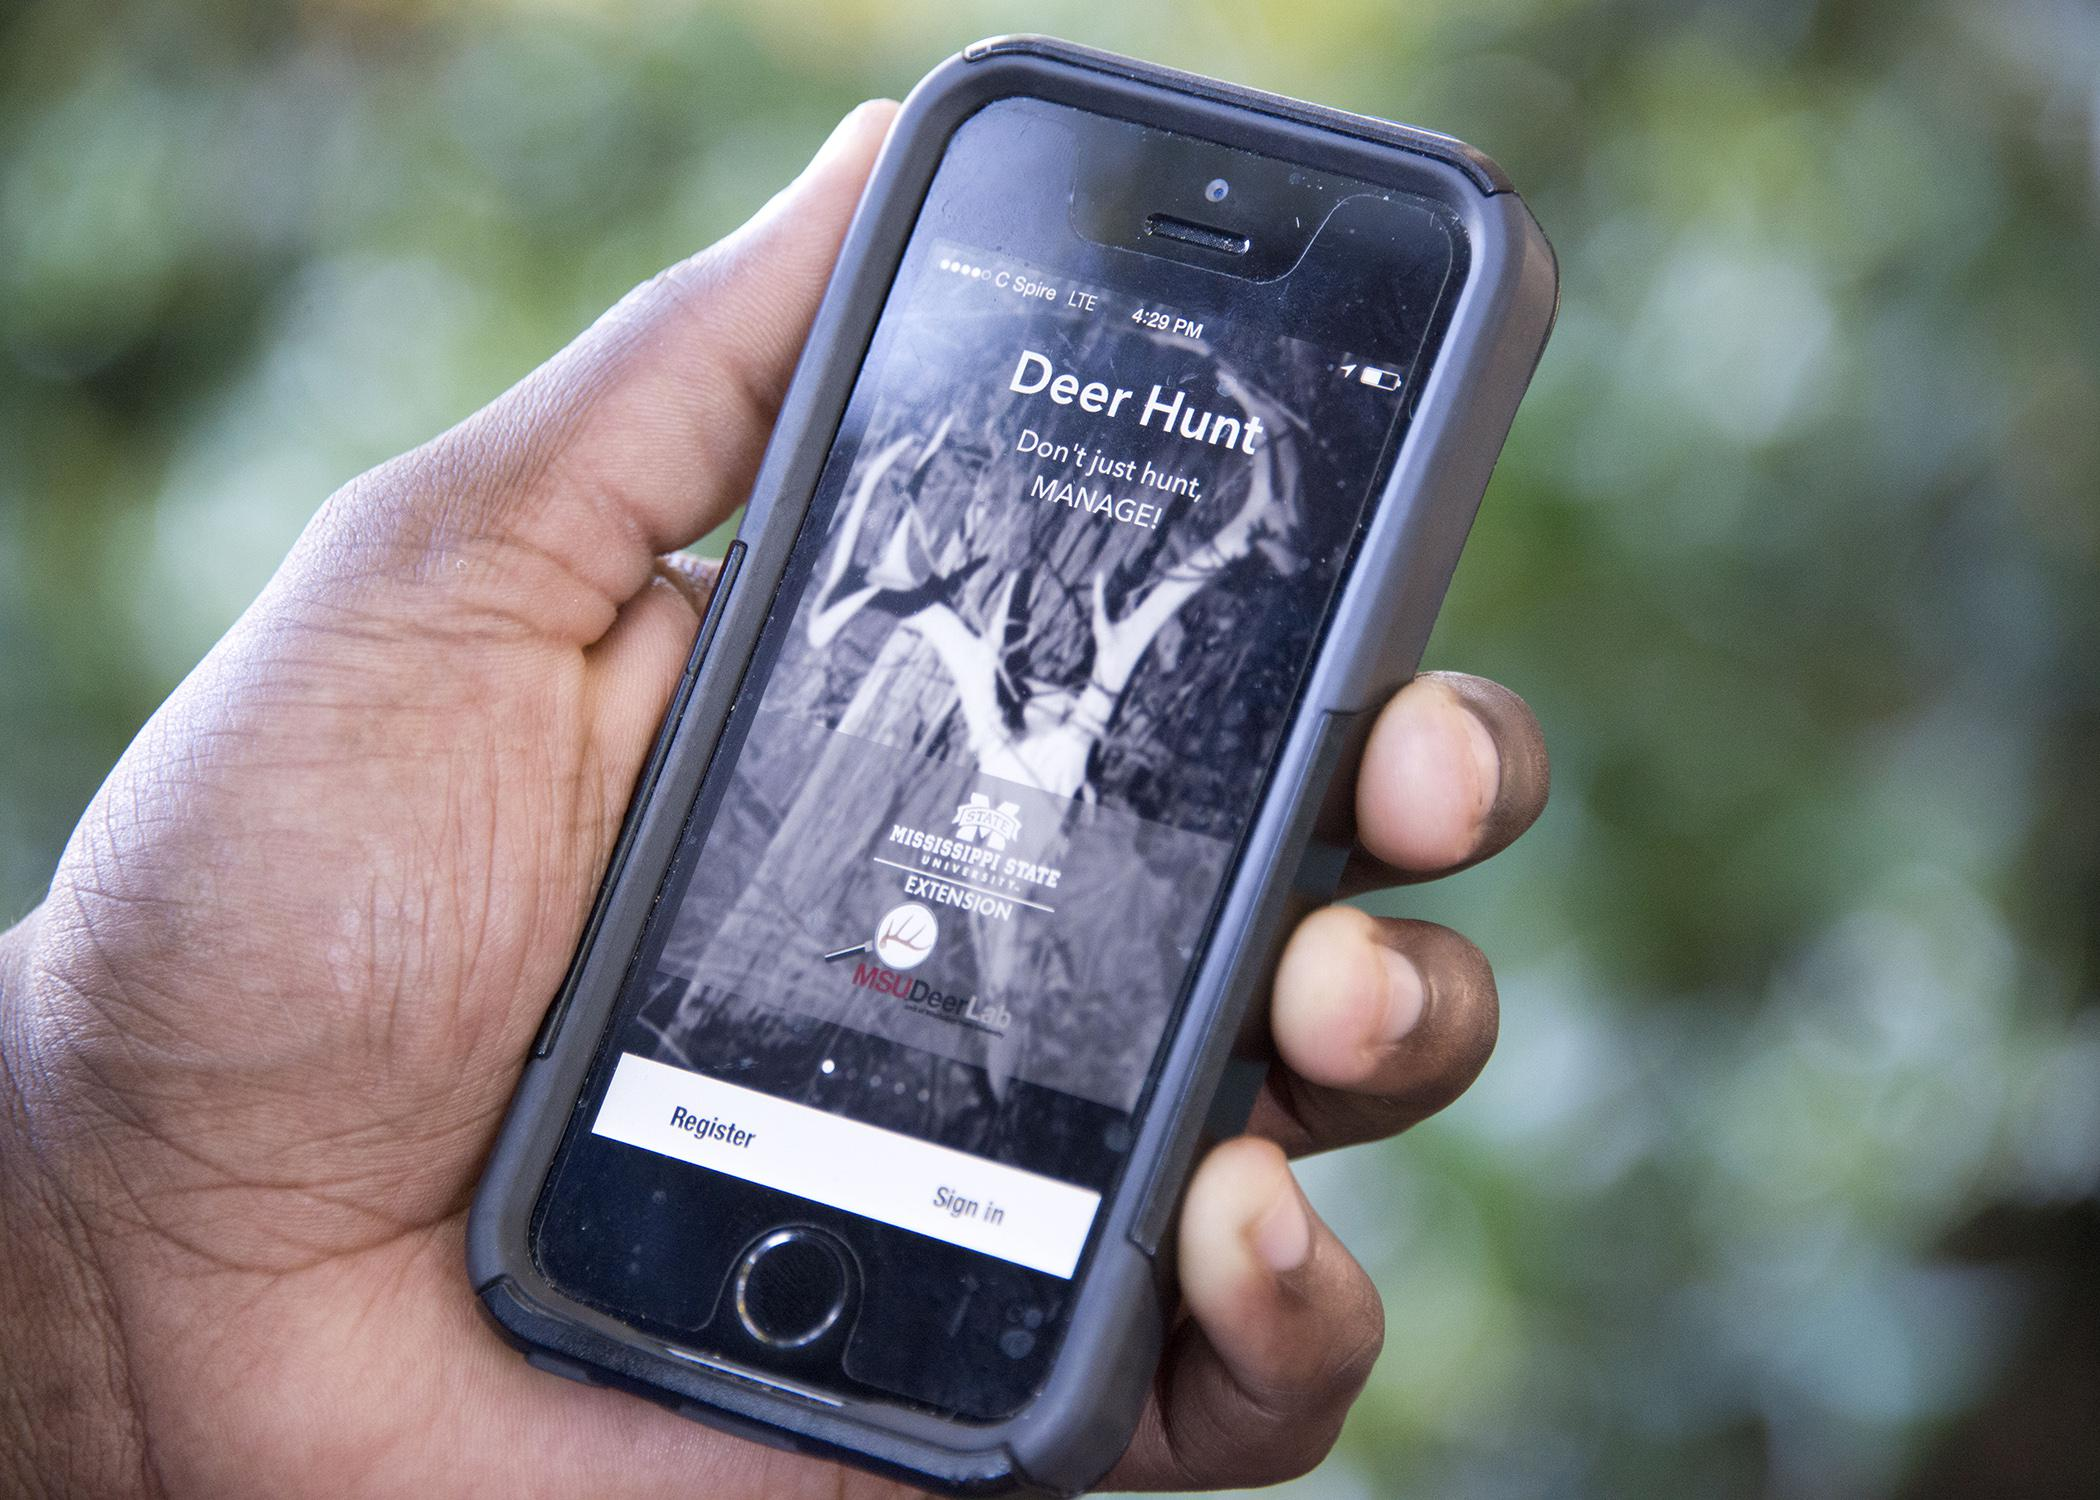 Updated features in a free phone app from the Mississippi State University Extension Service can help deer hunters improve their outdoor experiences and herd management abilities. (Photo by MSU Forest and Wildlife Research Center/David Ammon)